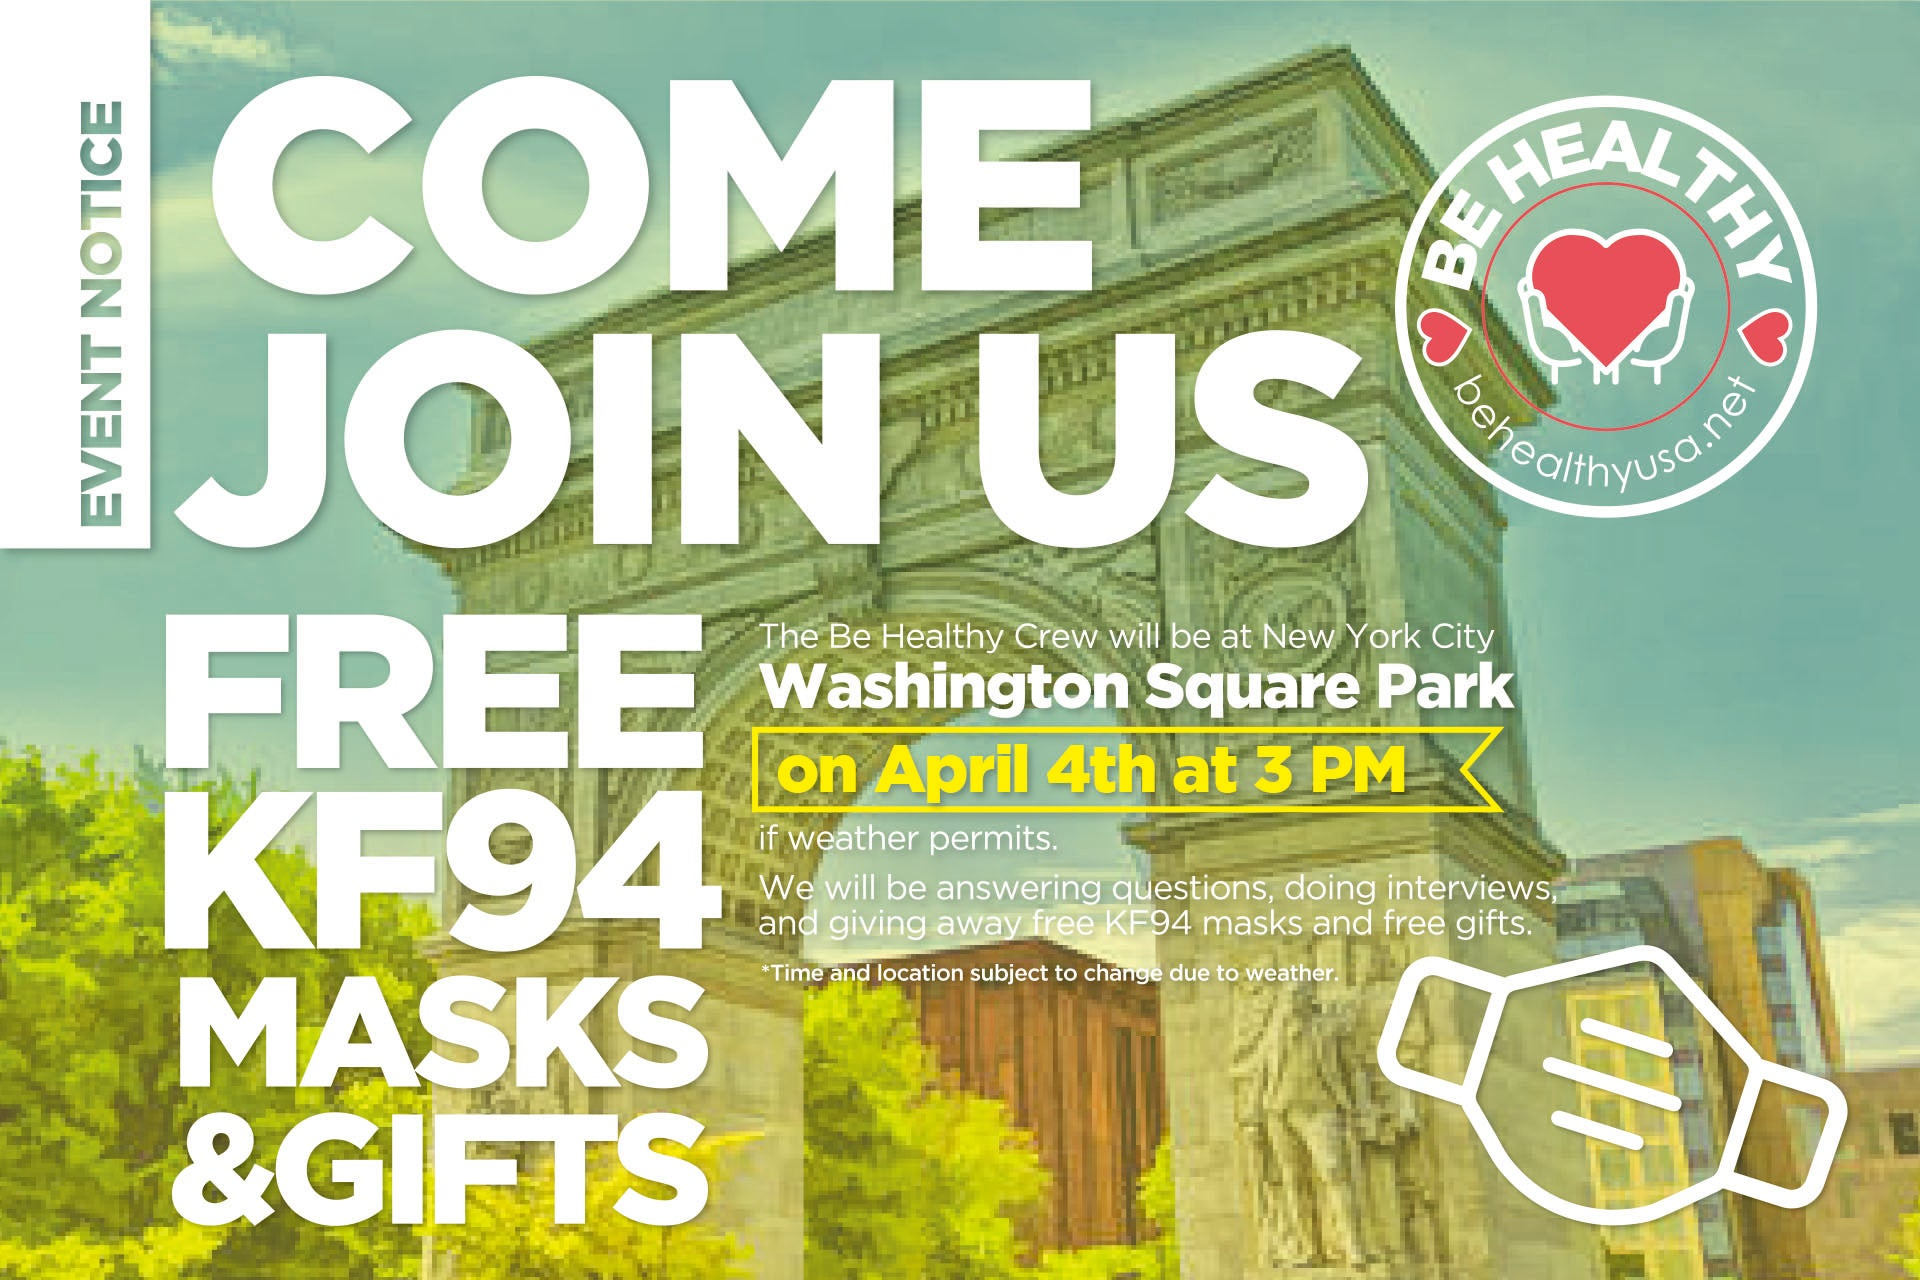 Event Notice - Free KF94 Masks & Gifts